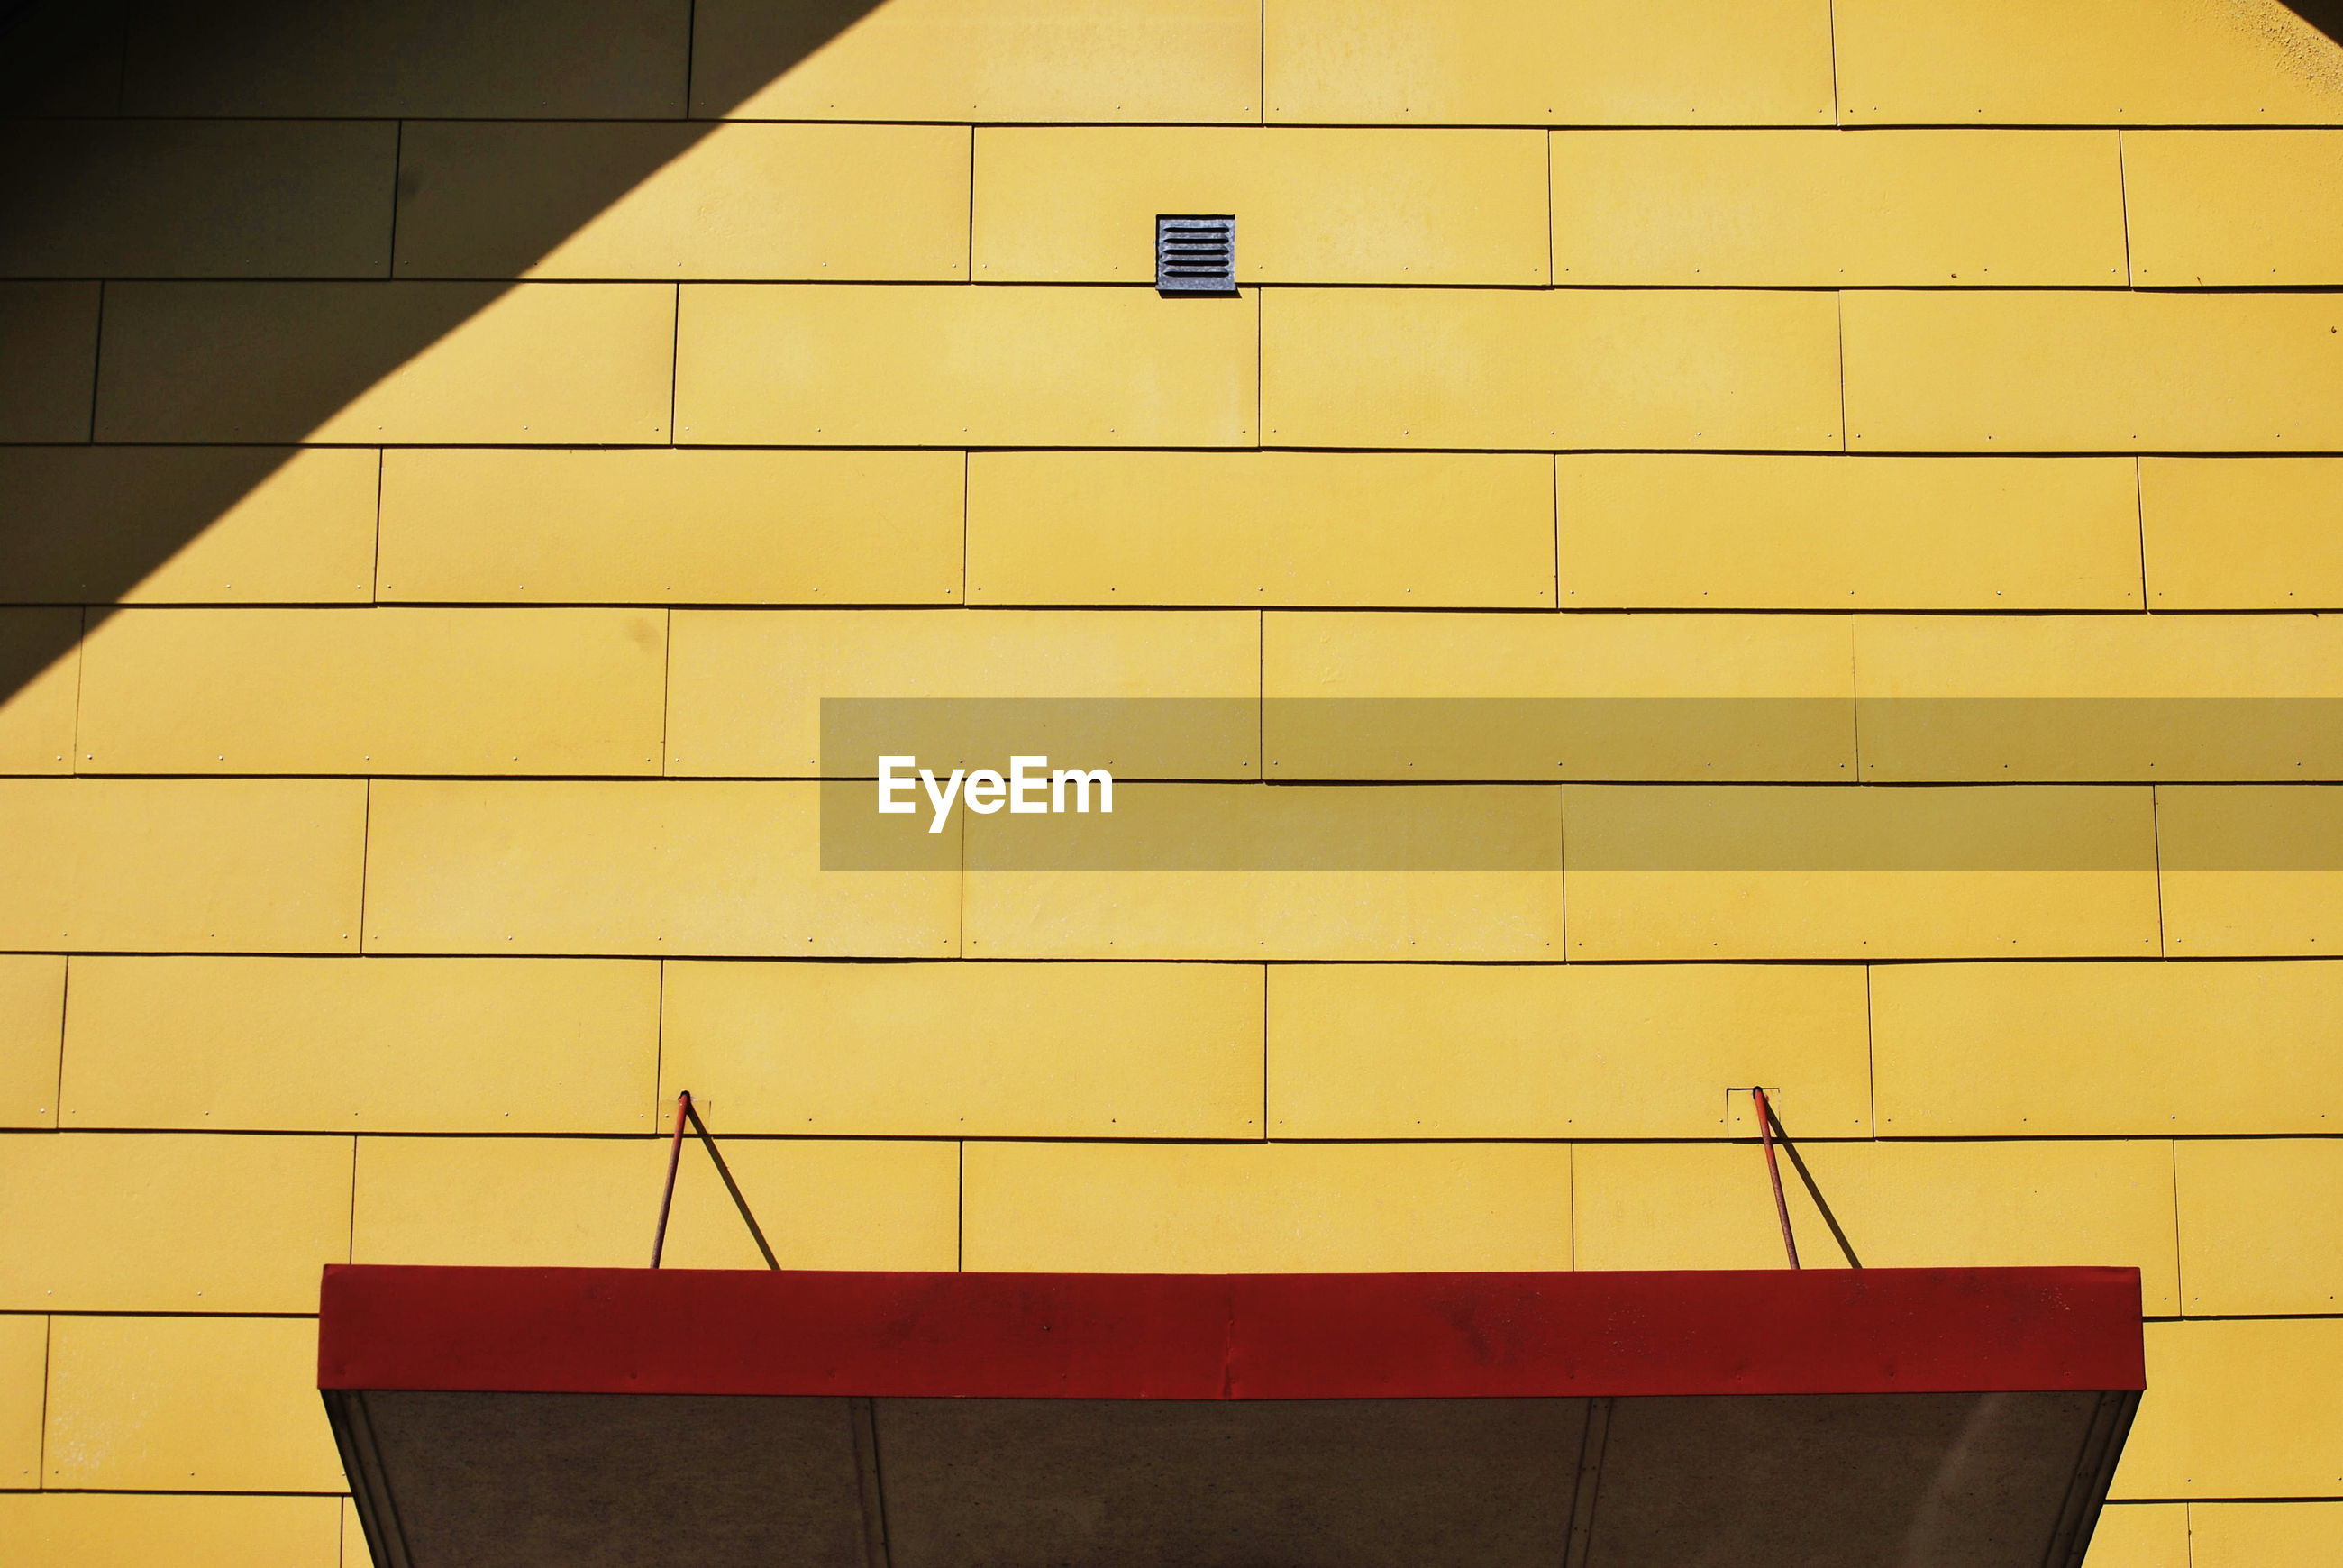 Low angle view of yellow wall against building